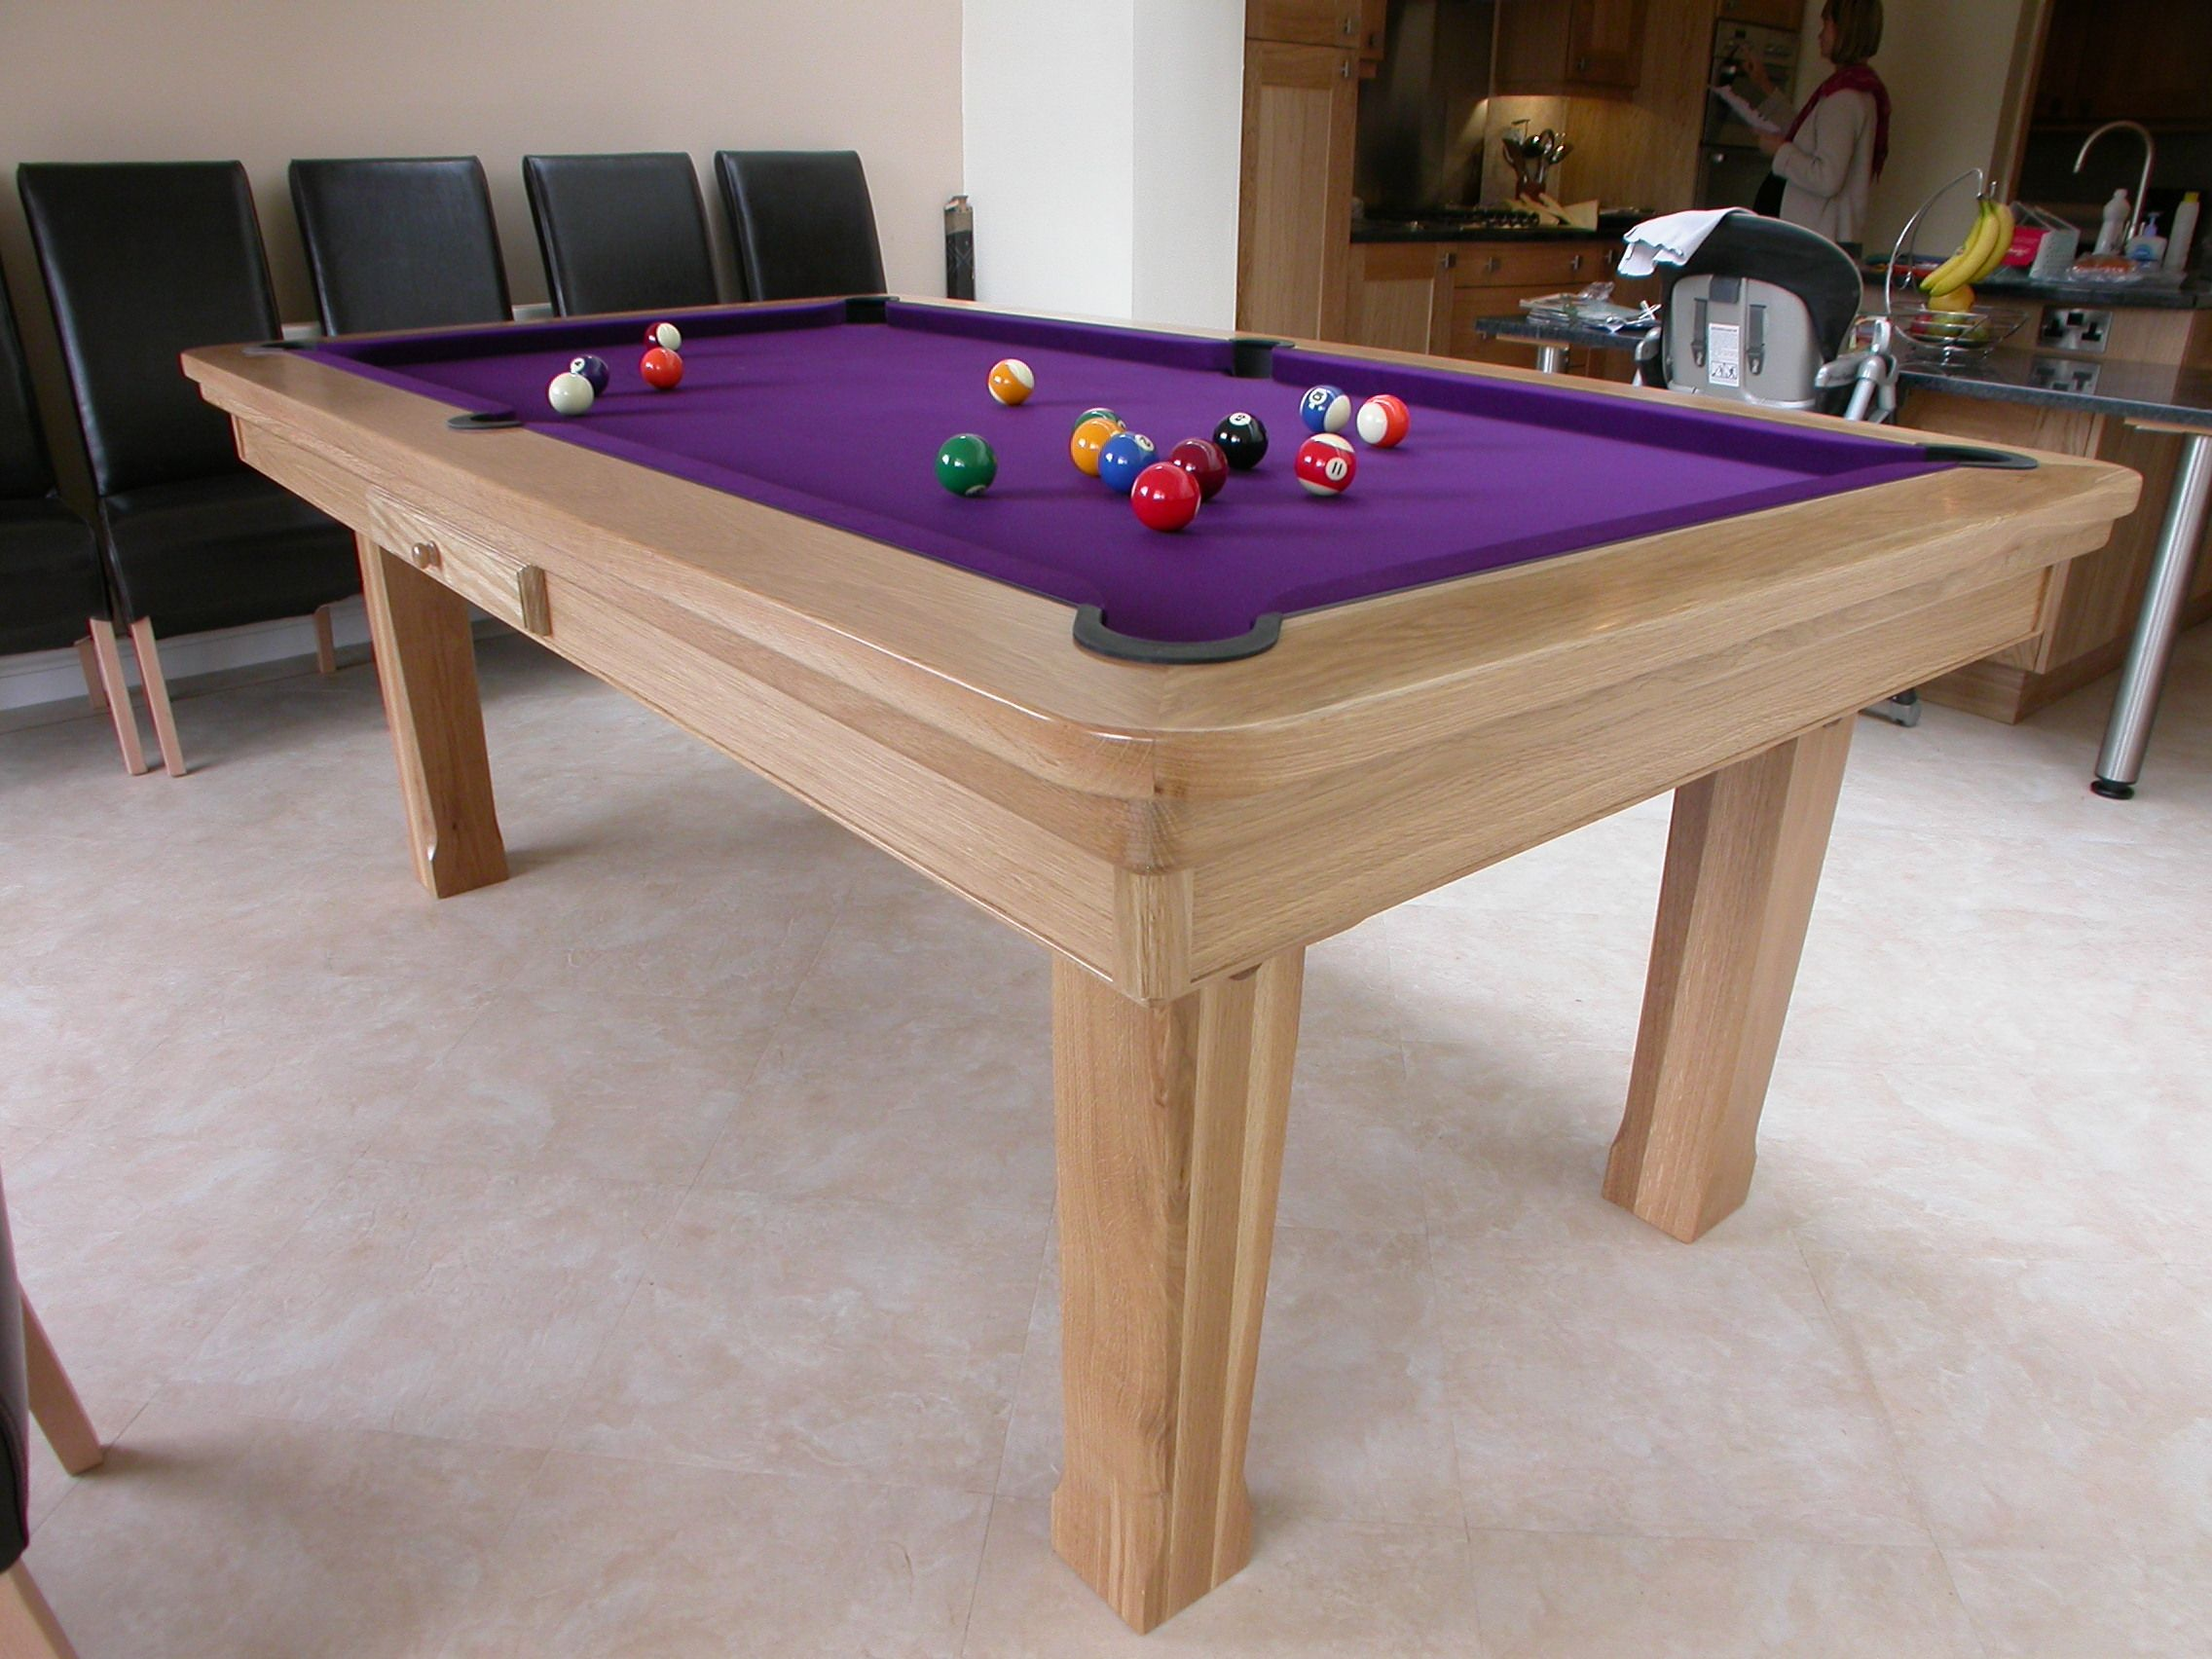 Multifunction Furniture Accessories And Furniture Fabulous Multifunction Pool Table